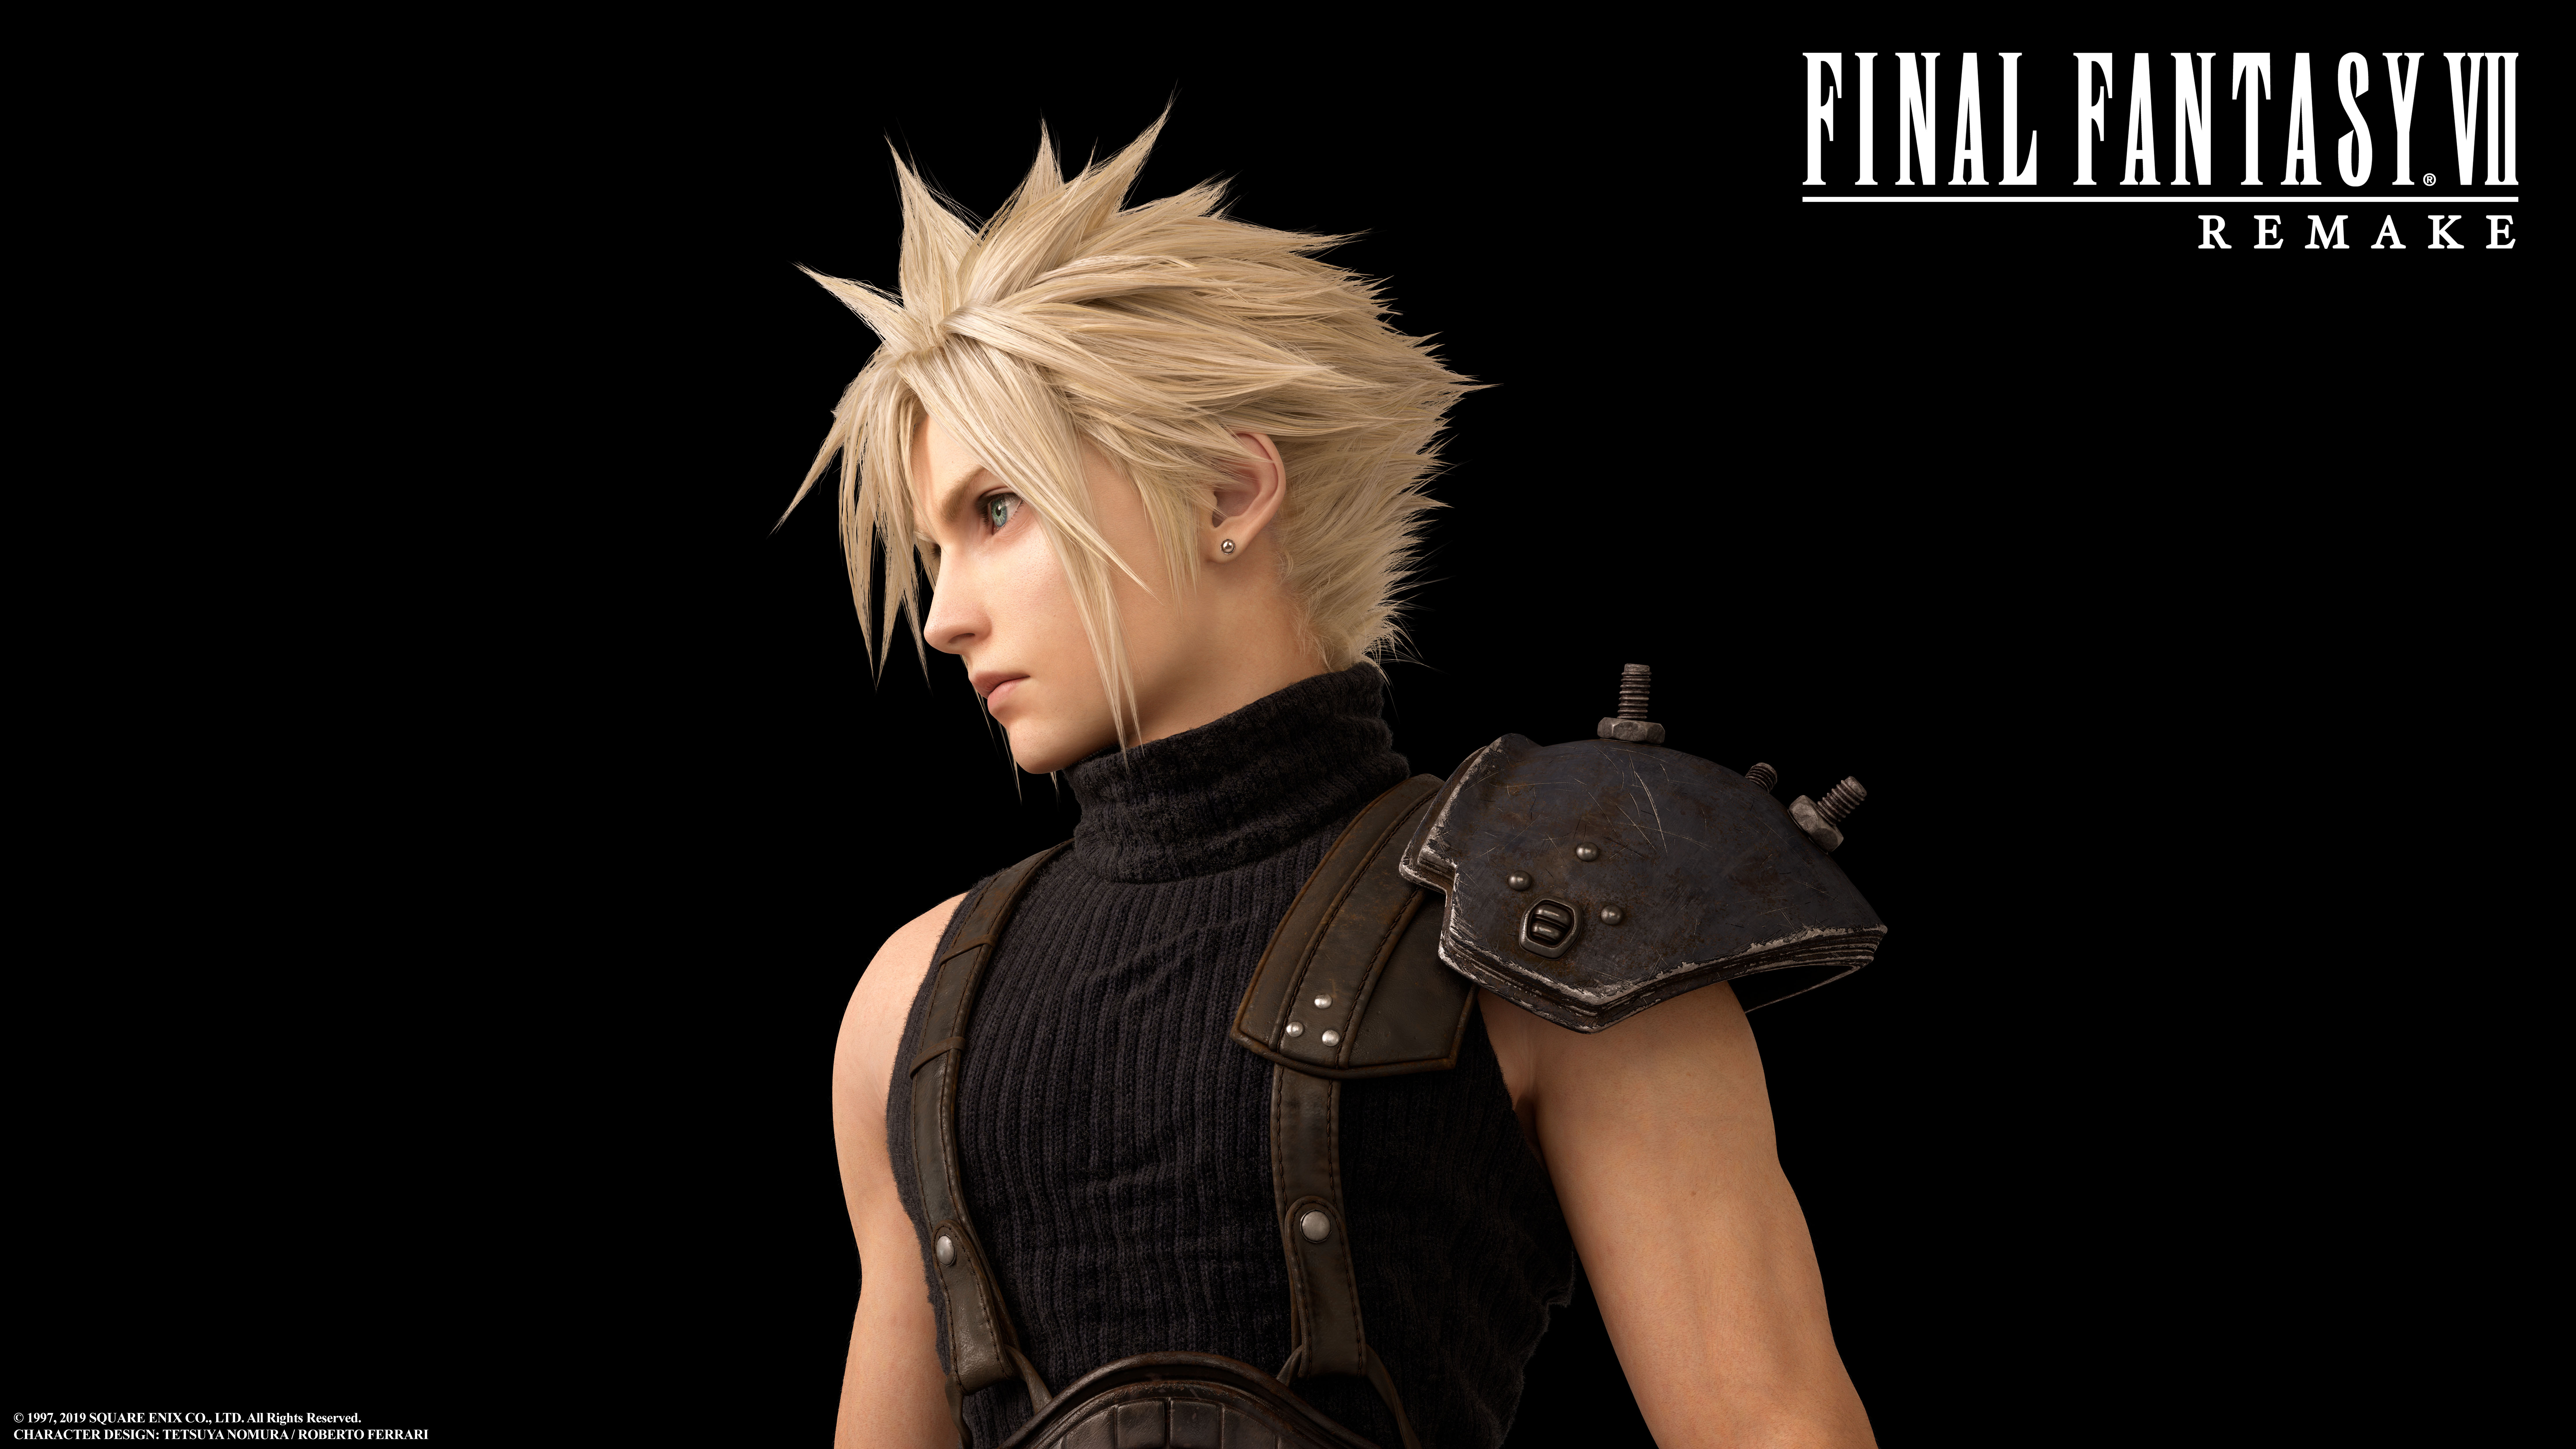 Gallery All Final Fantasy Vii Remake Character Art Push Square